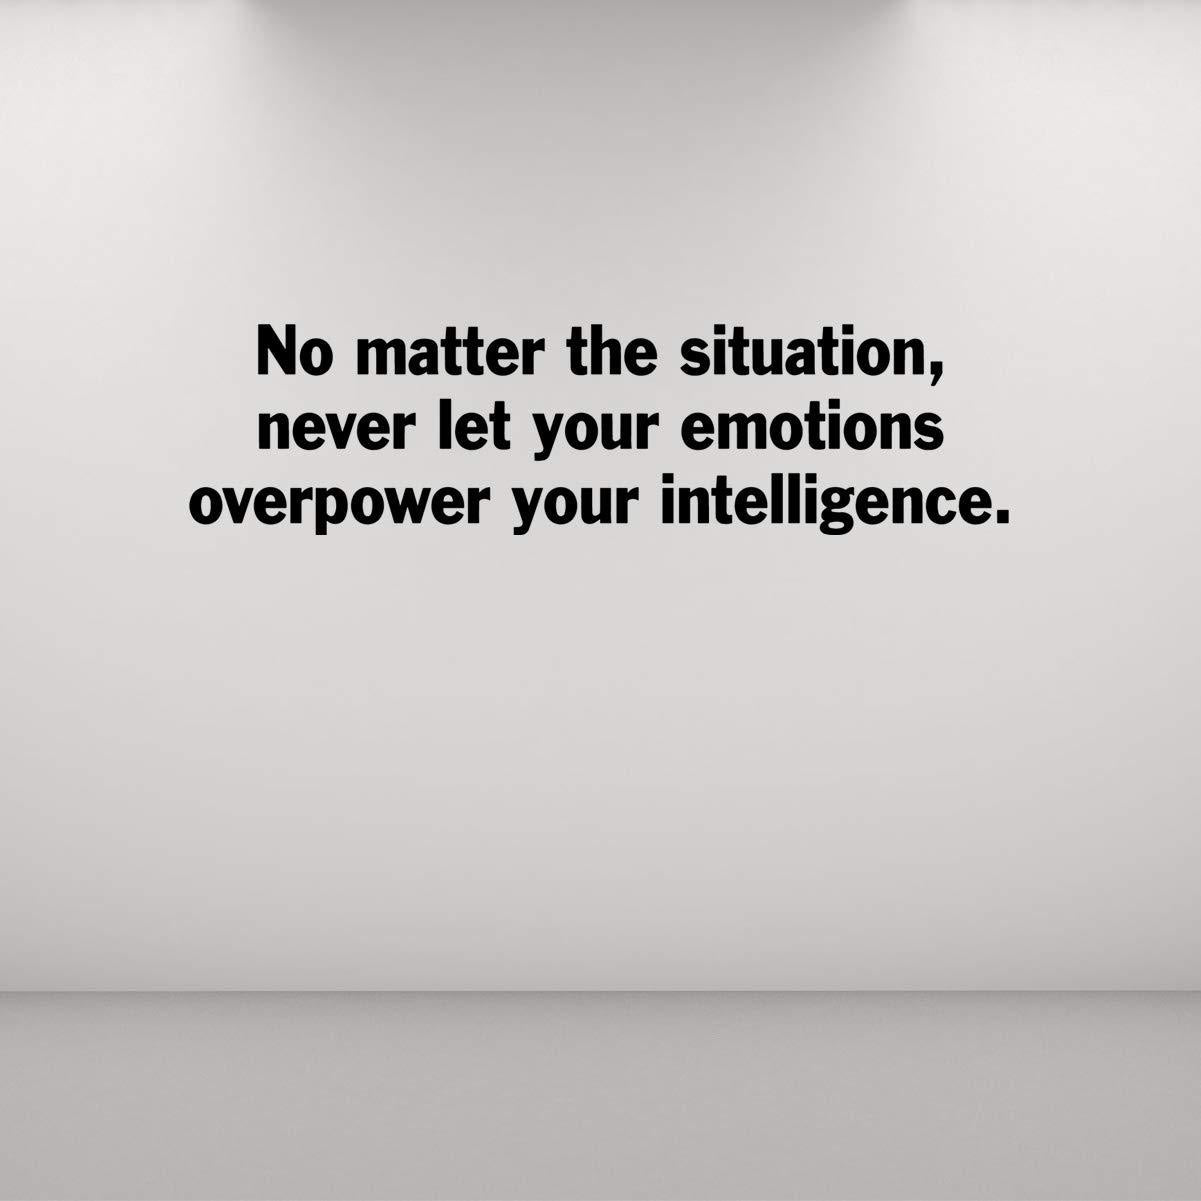 VWAQ No Matter The Situation, Never Let Your Emotions Overpower Your Intelligence Quotes Wall Decal